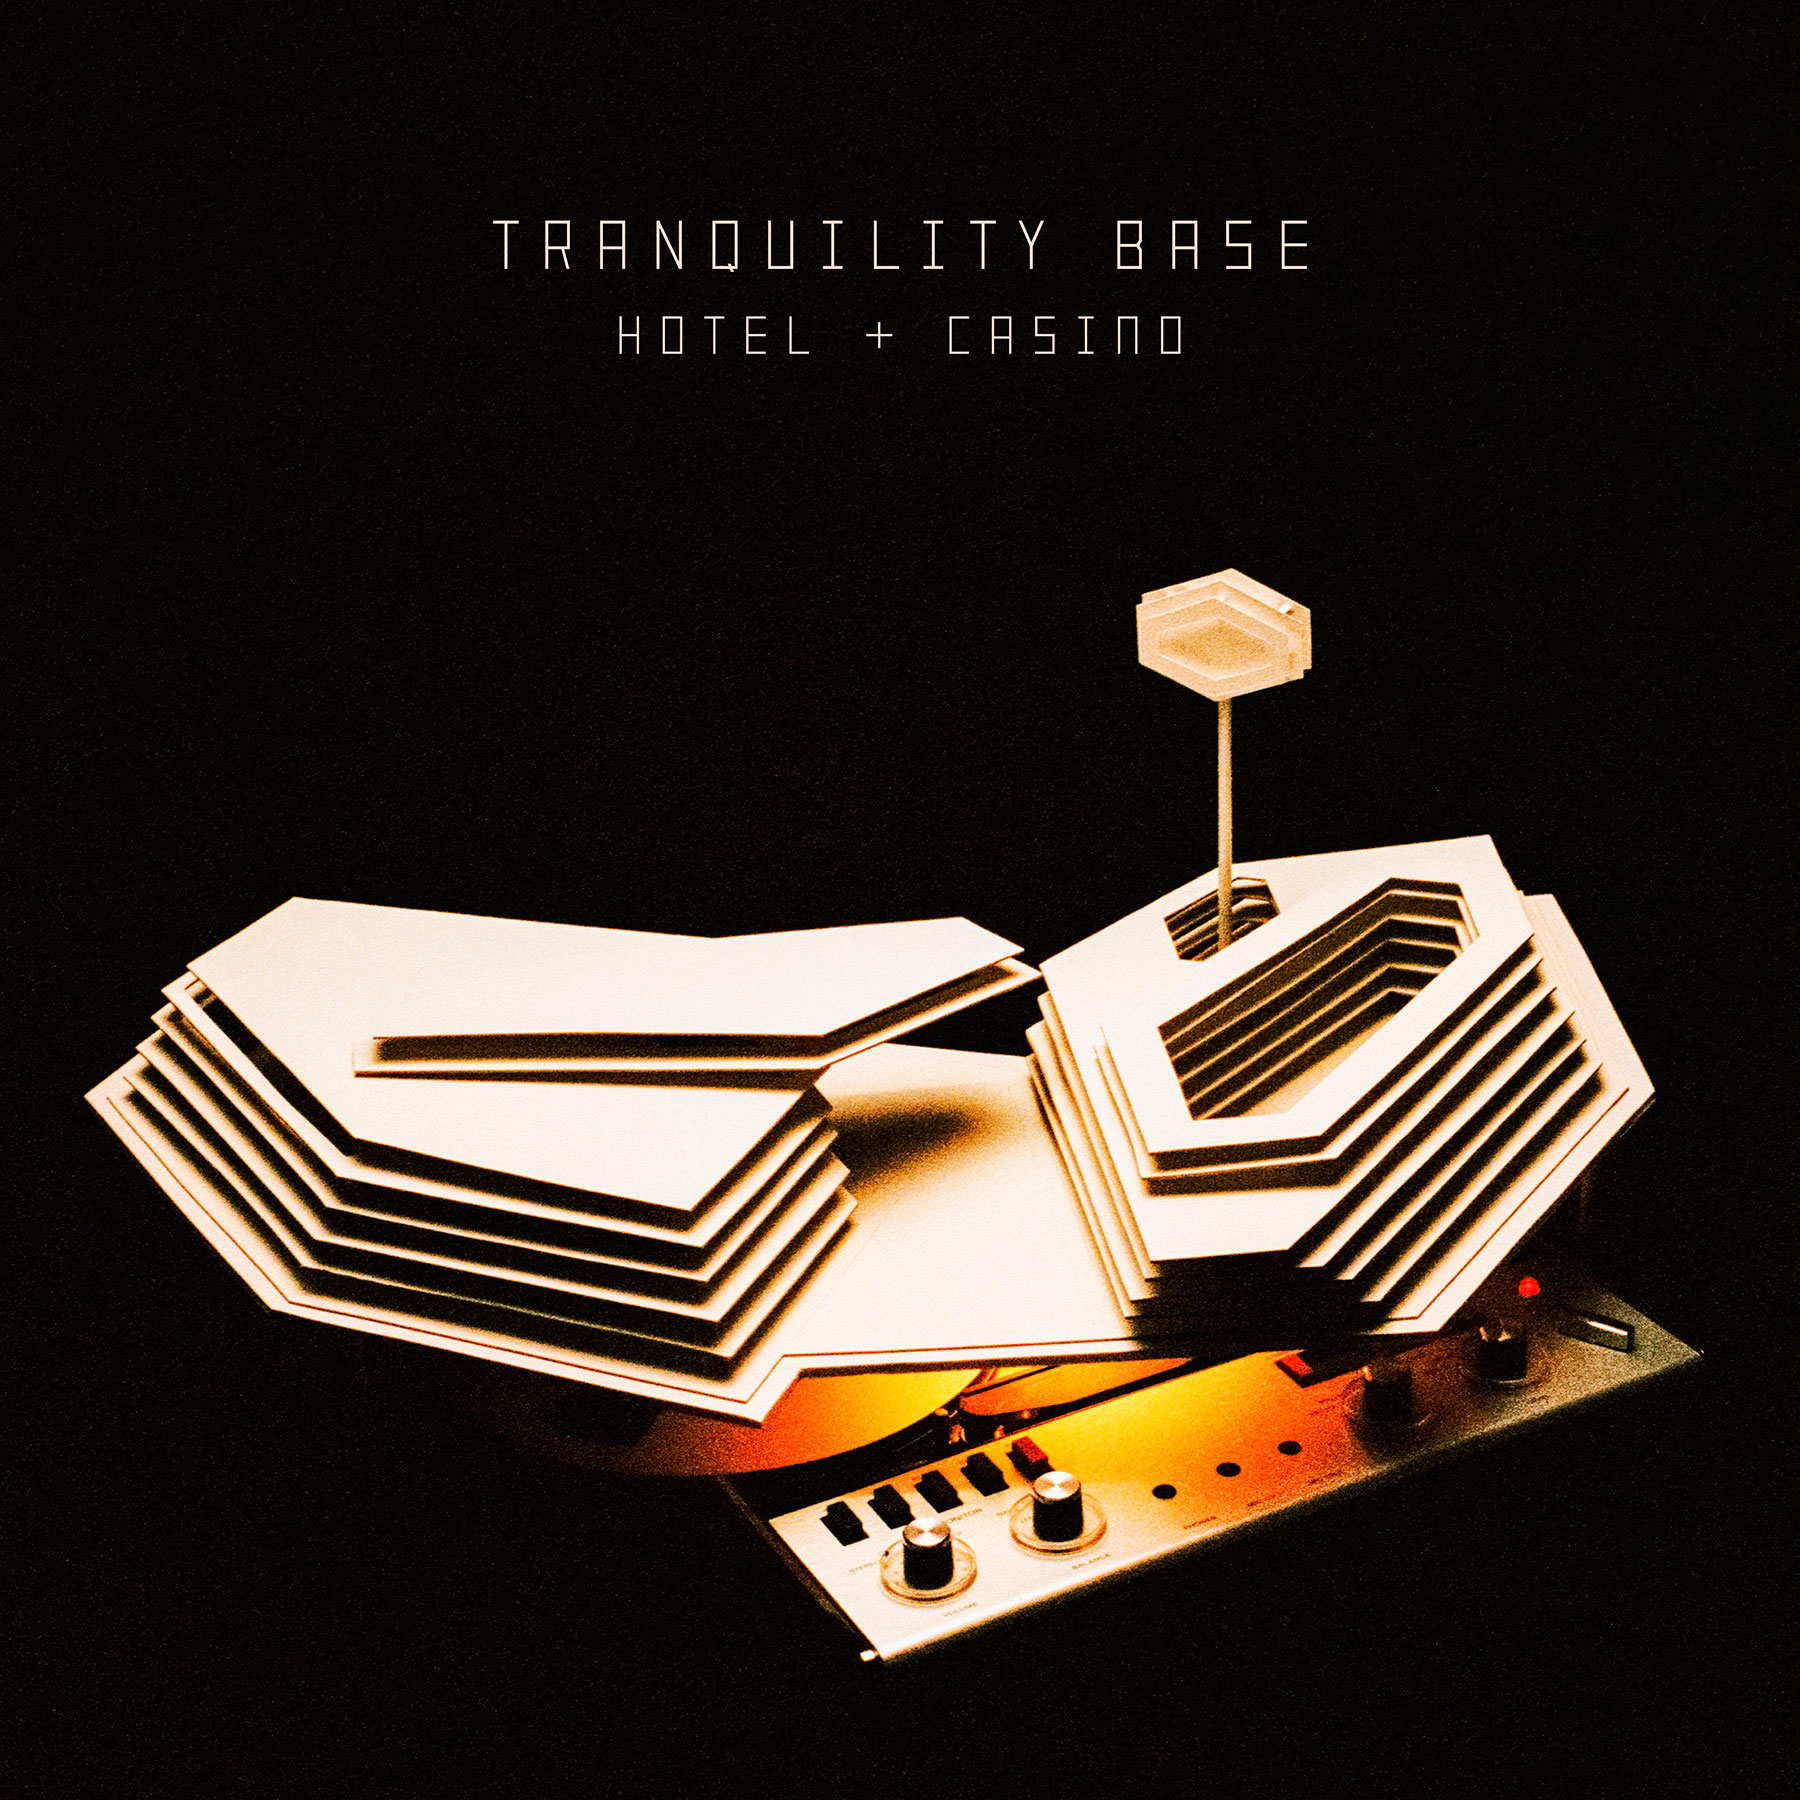 Arctic Monkeys'Tranquility Base Hotel & Casino'Album Cover